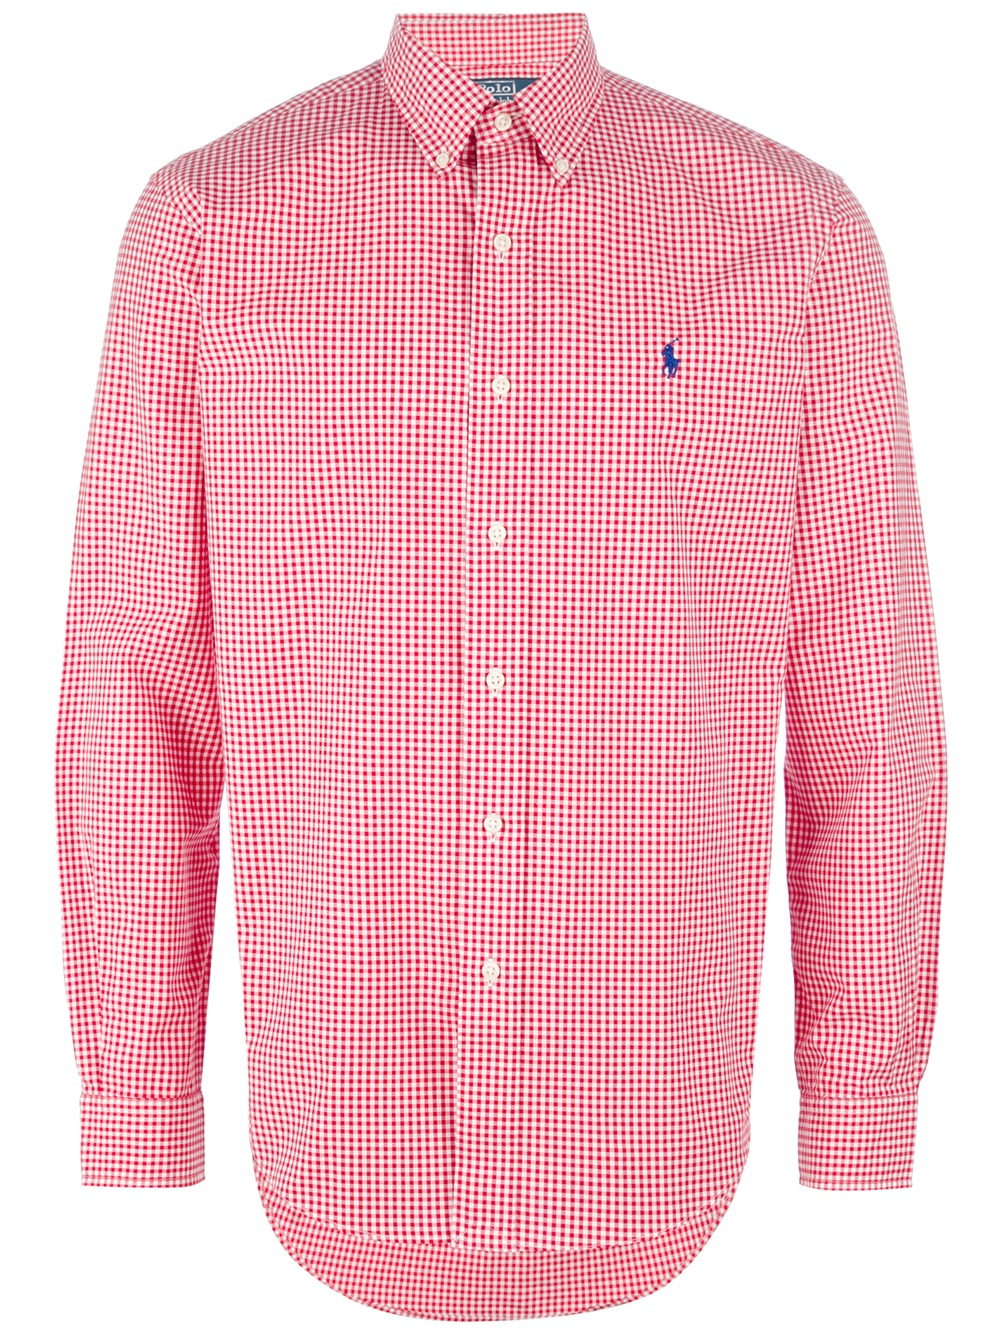 Polo Ralph Lauren Gingham Button Down Shirt In Red For Men